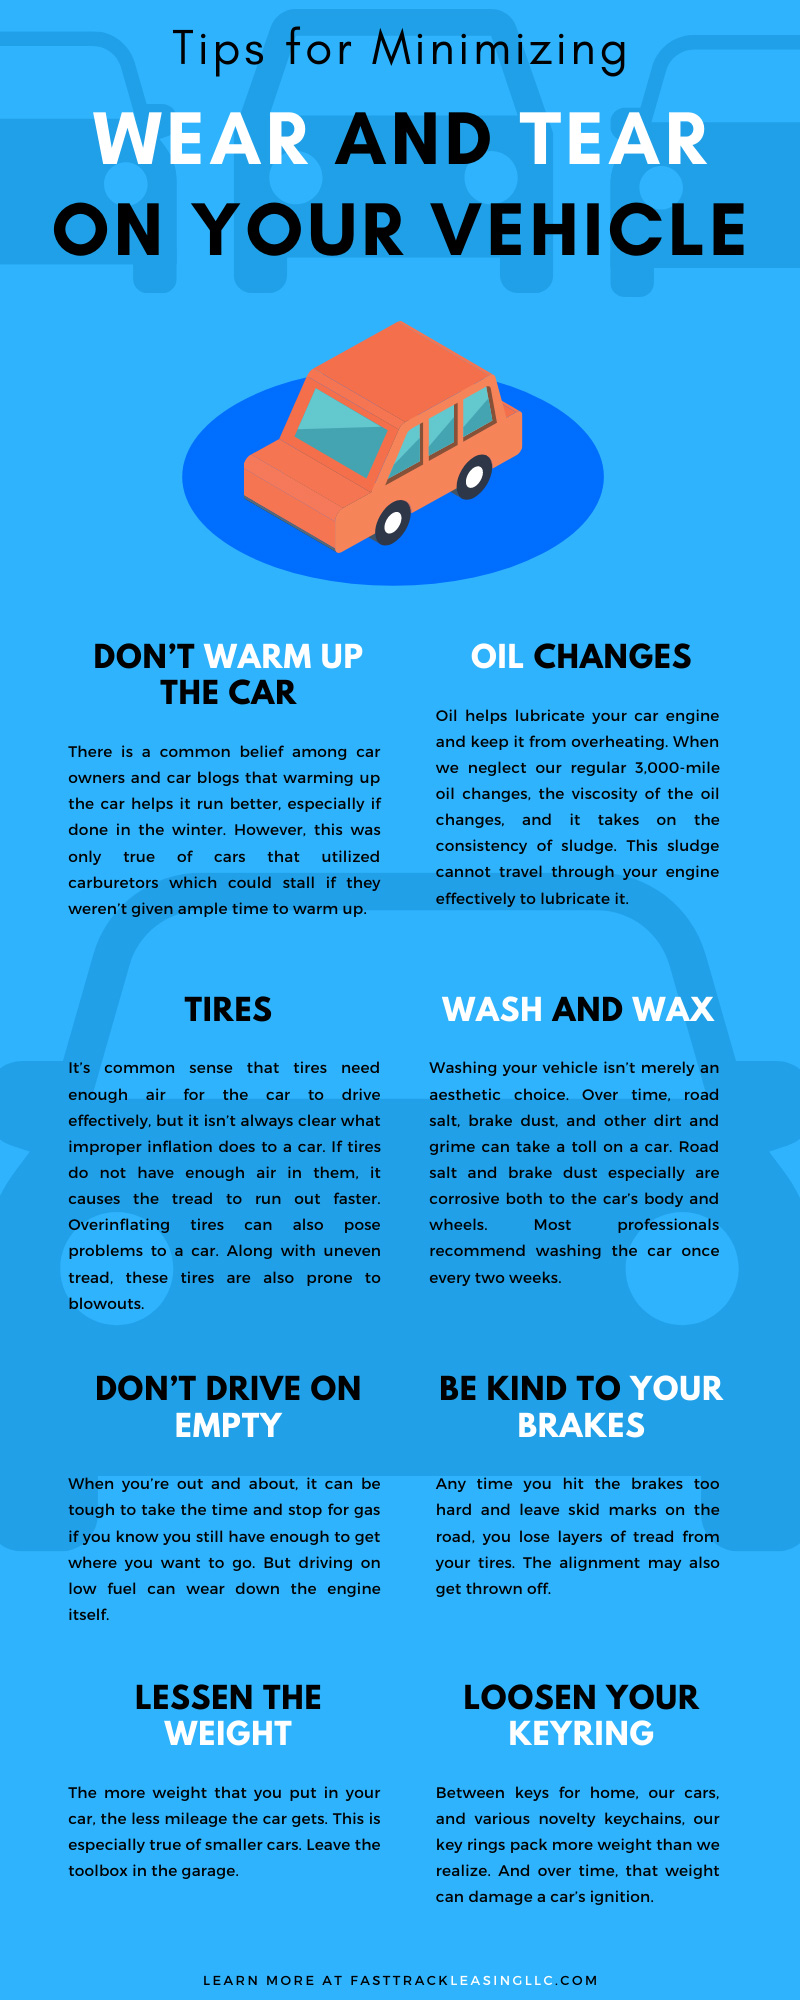 Tips for Minimizing Wear and Tear on Your Vehicle